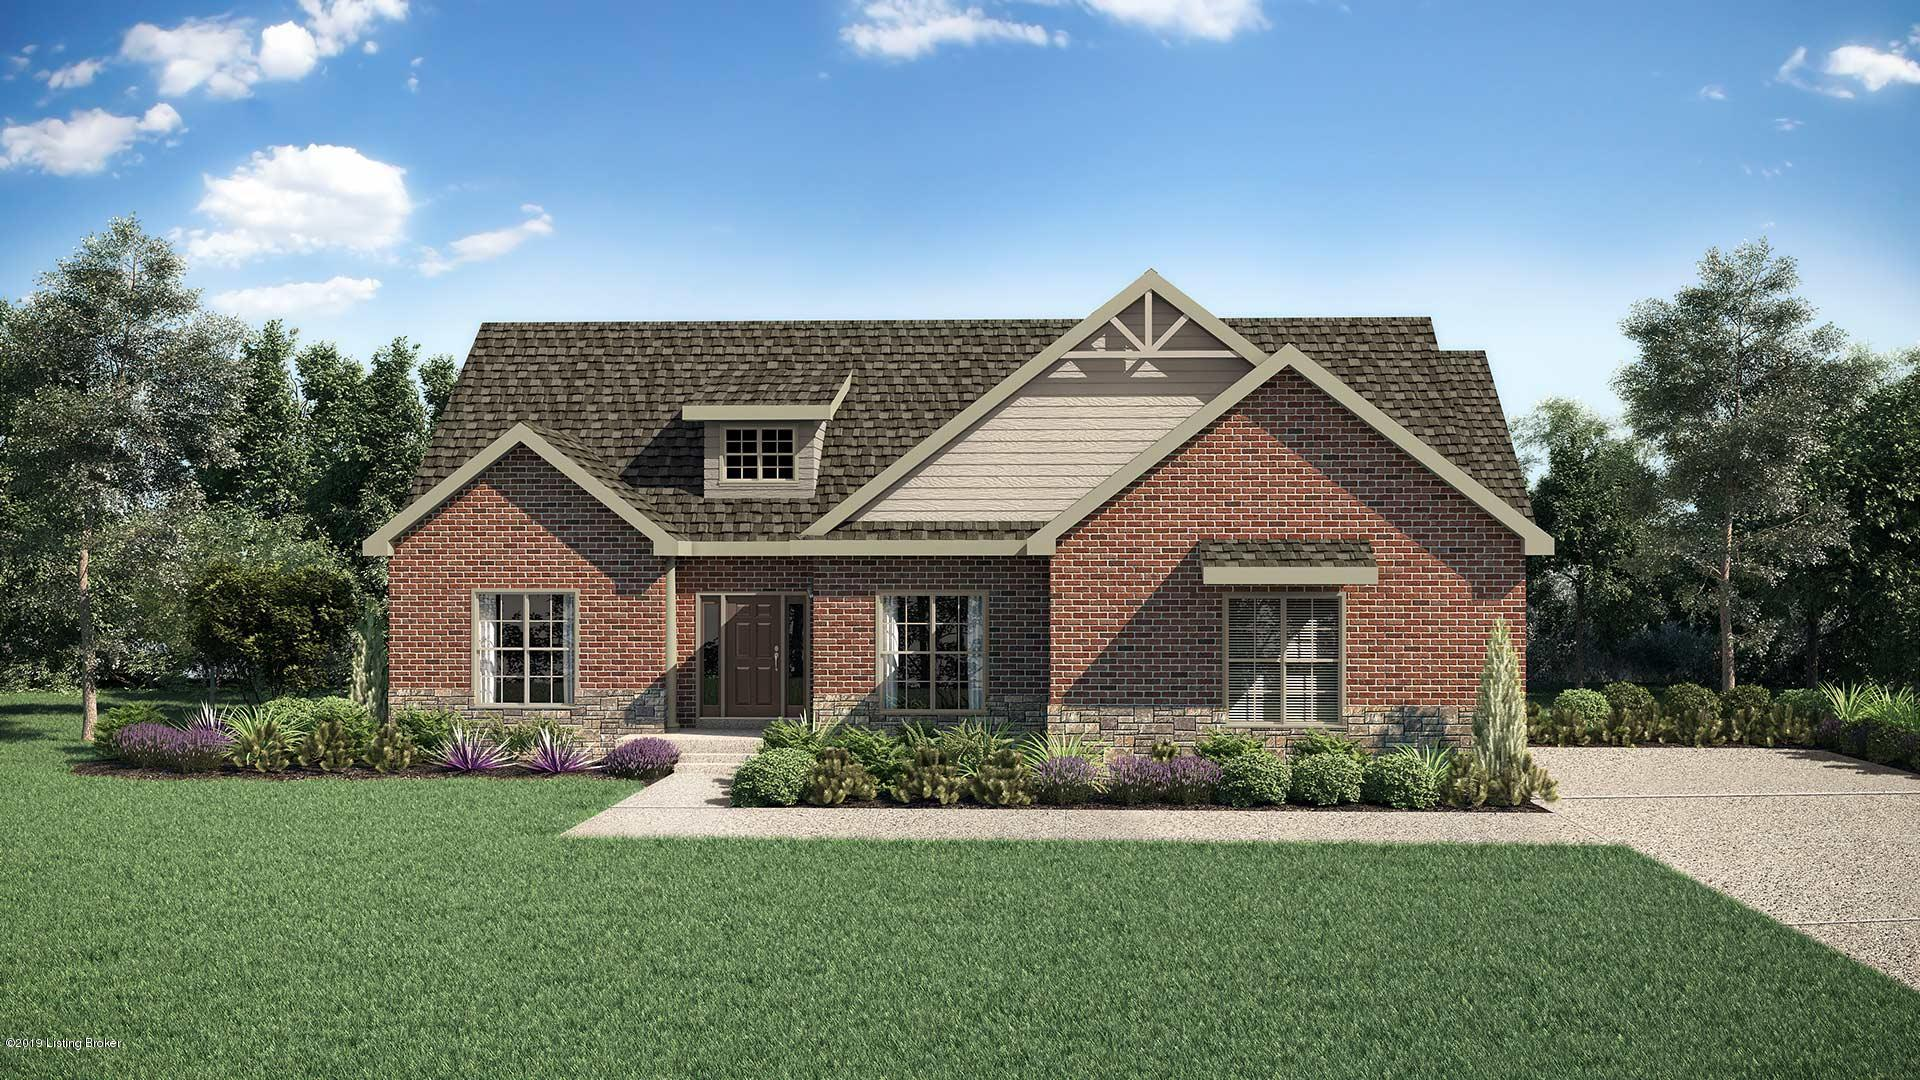 Lot 28 Scenic Lakes Dr